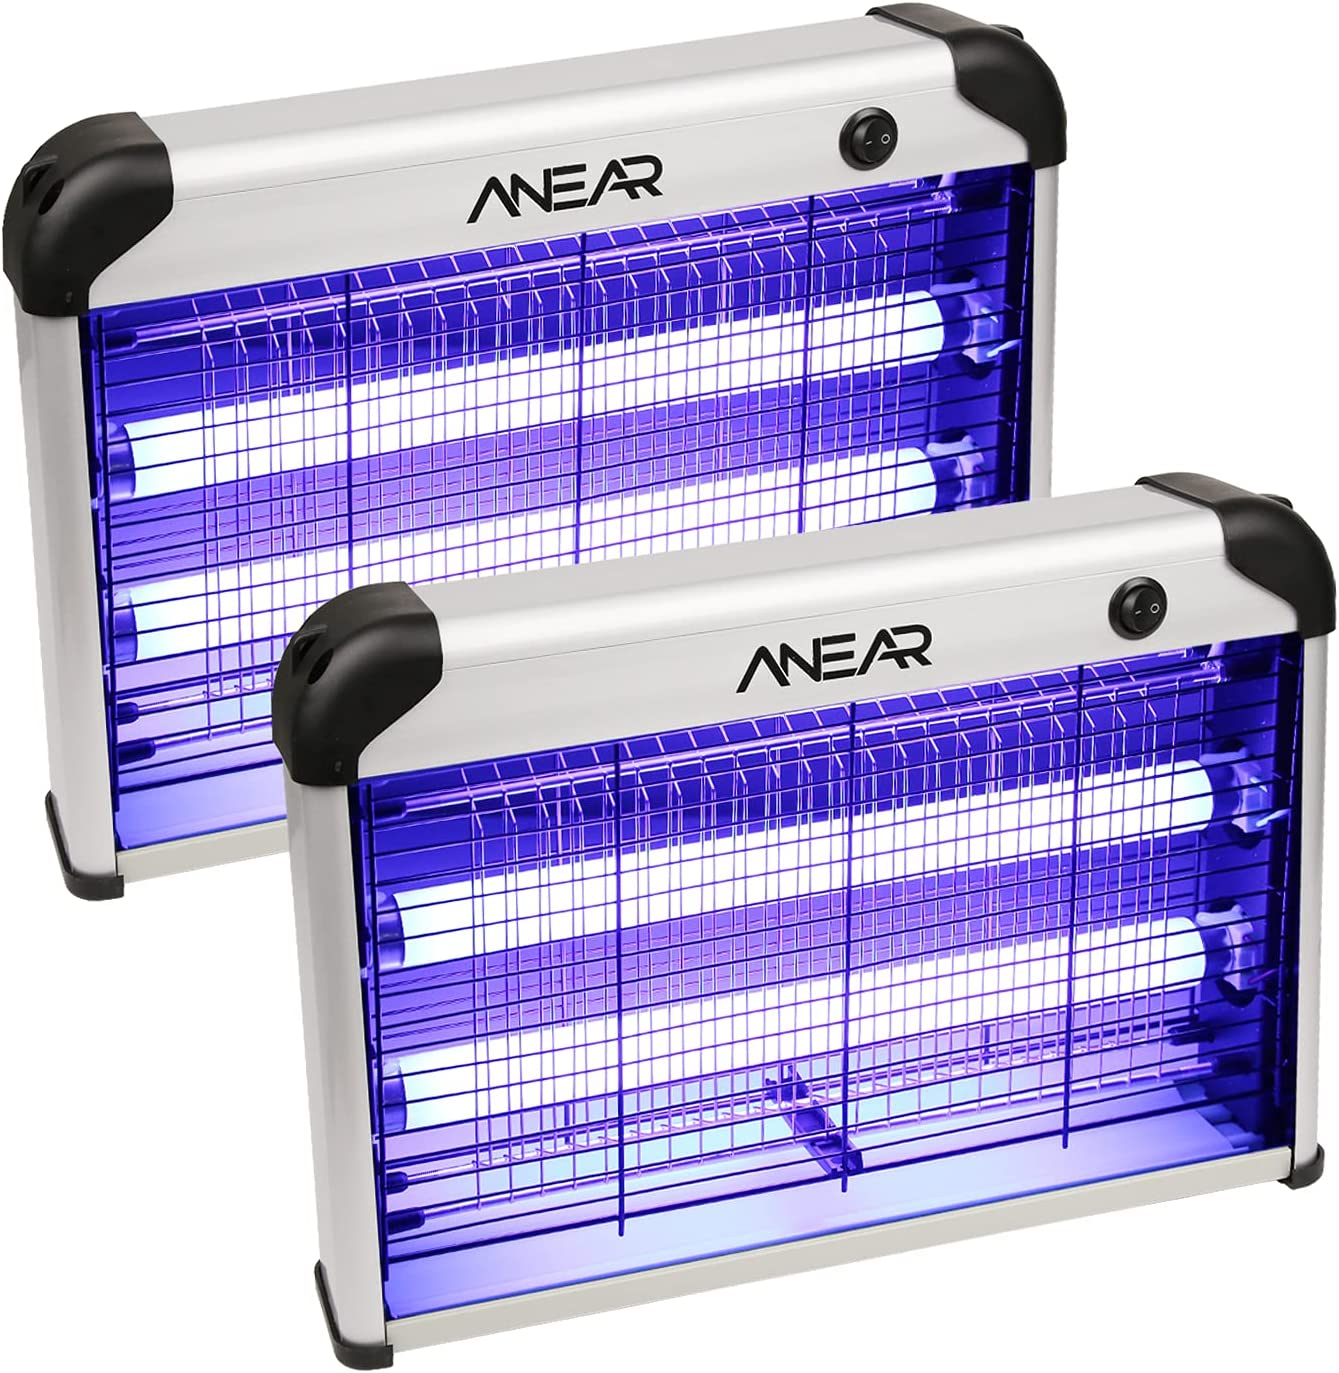 2 Pack Electric Bug Zapper, ANEAR Insect Killer with 20W 2400V Power Grid Mosquito Zapper Trap - Mosquito, Fly, Moth, Wasp, Beetle & Other Pests Killer for Backyard, Patio : Garden & Outdoor